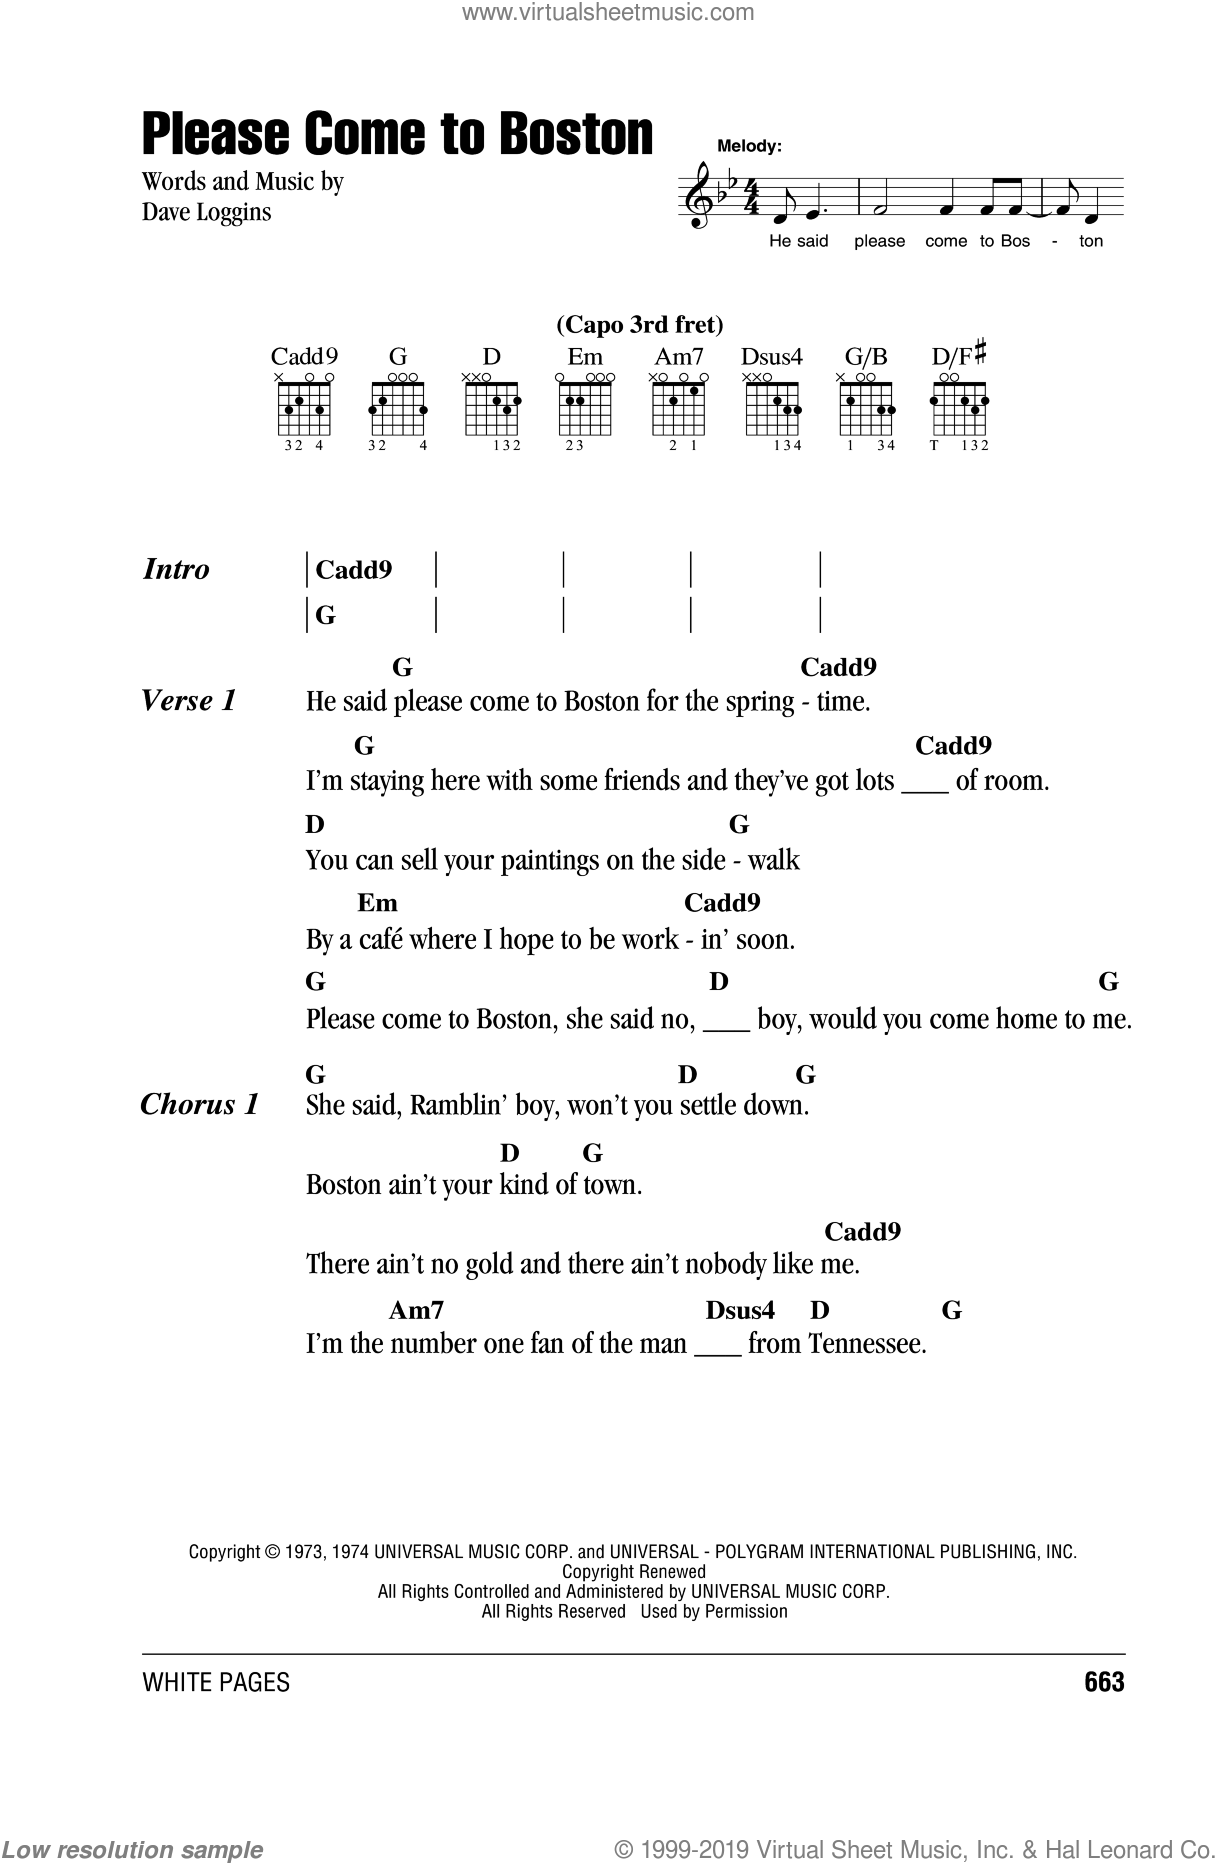 Please Come To Boston sheet music for guitar (chords) by Dave Loggins, intermediate guitar (chords). Score Image Preview.